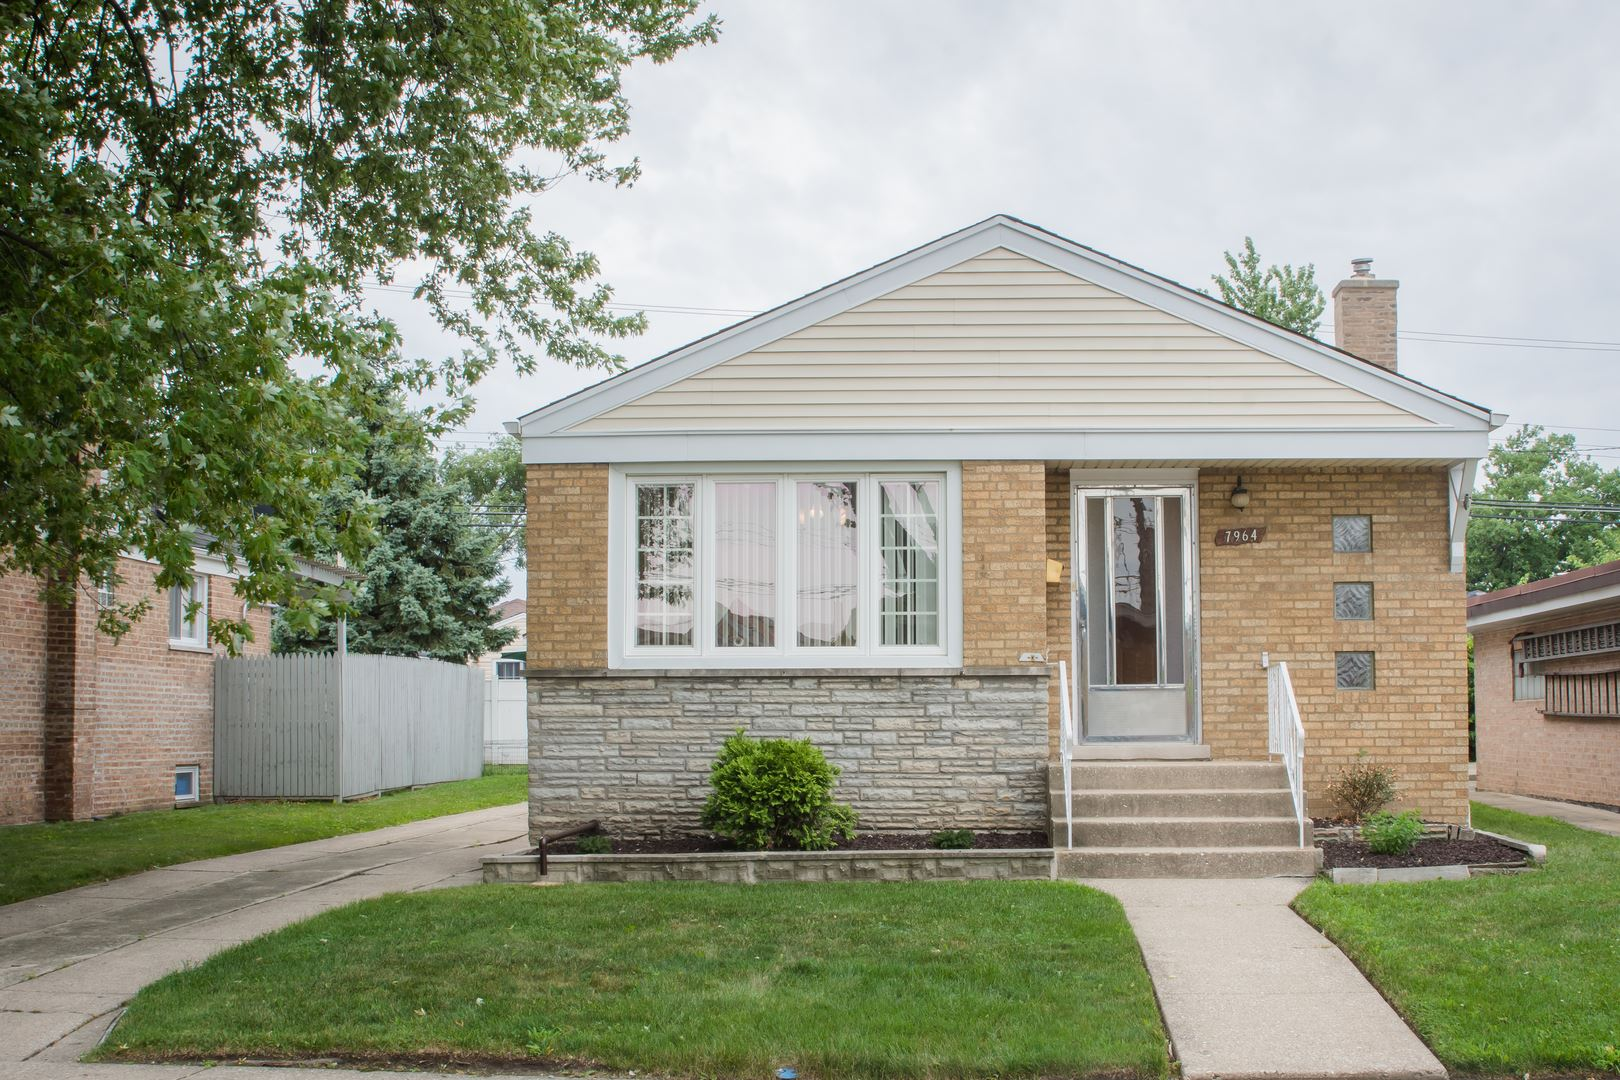 7964 S Kildare Avenue, Chicago, IL 60652 - #: 10807102